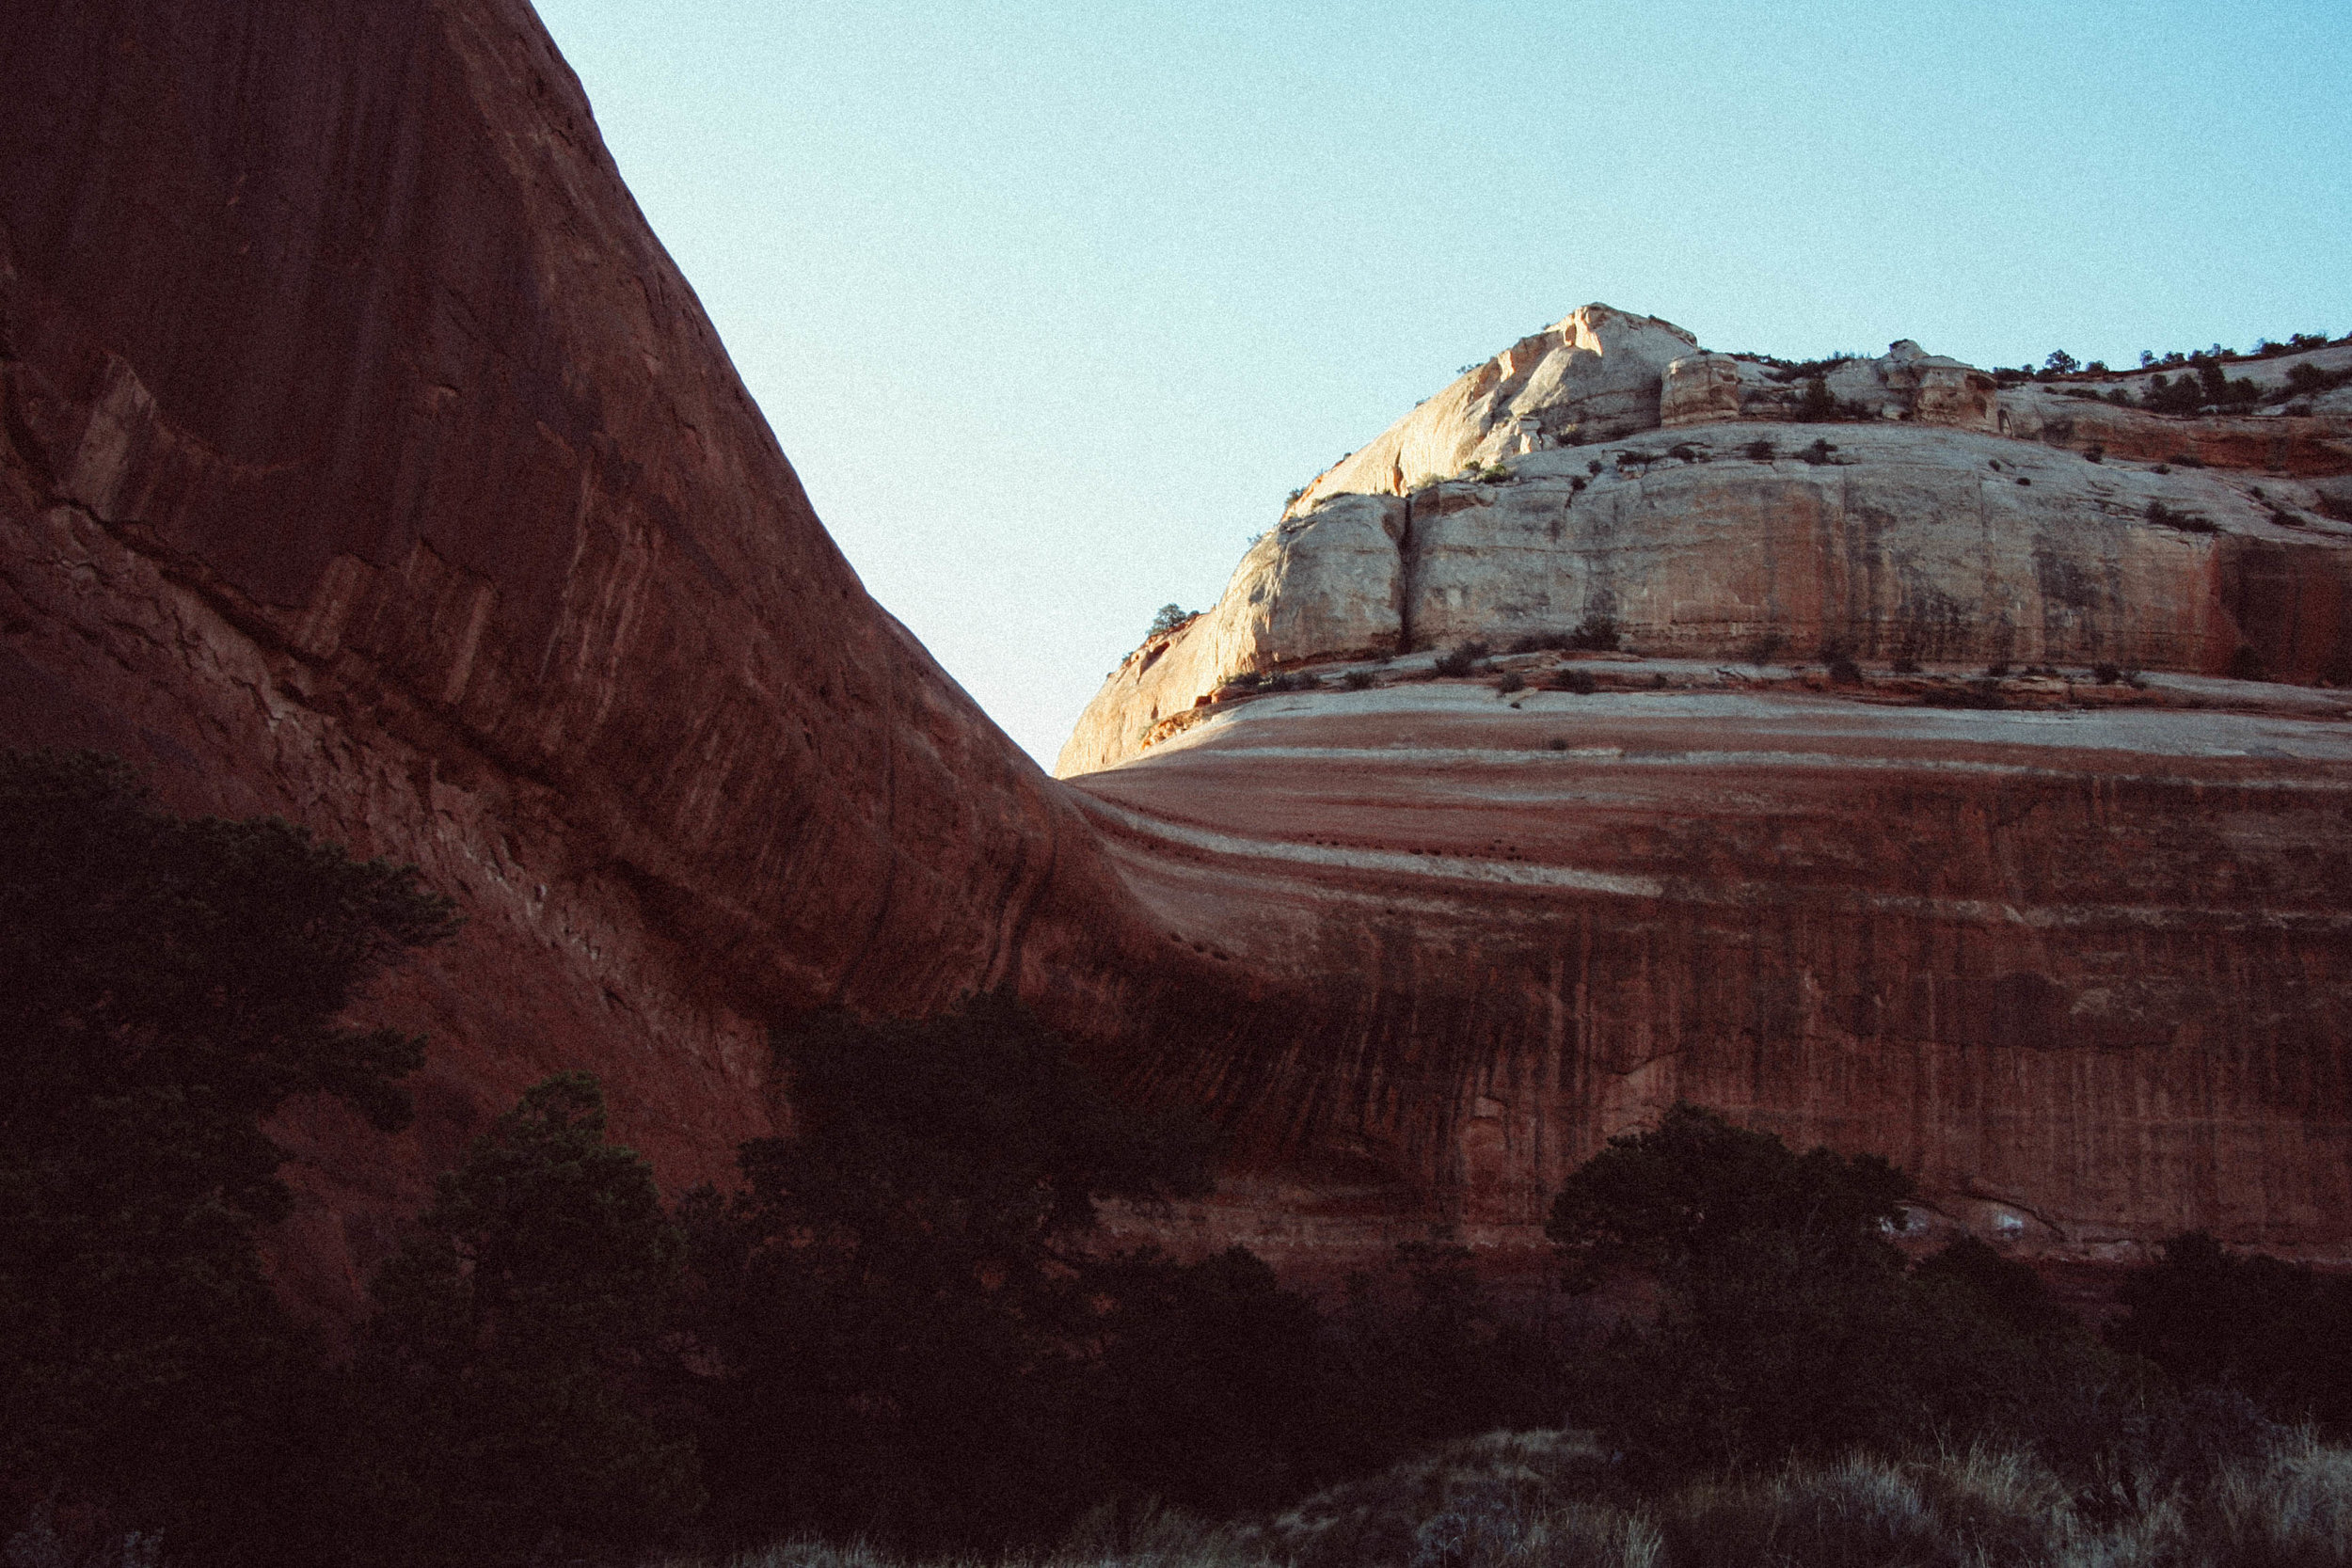 outside of Moab, Utah. In Canyonlands National Park.